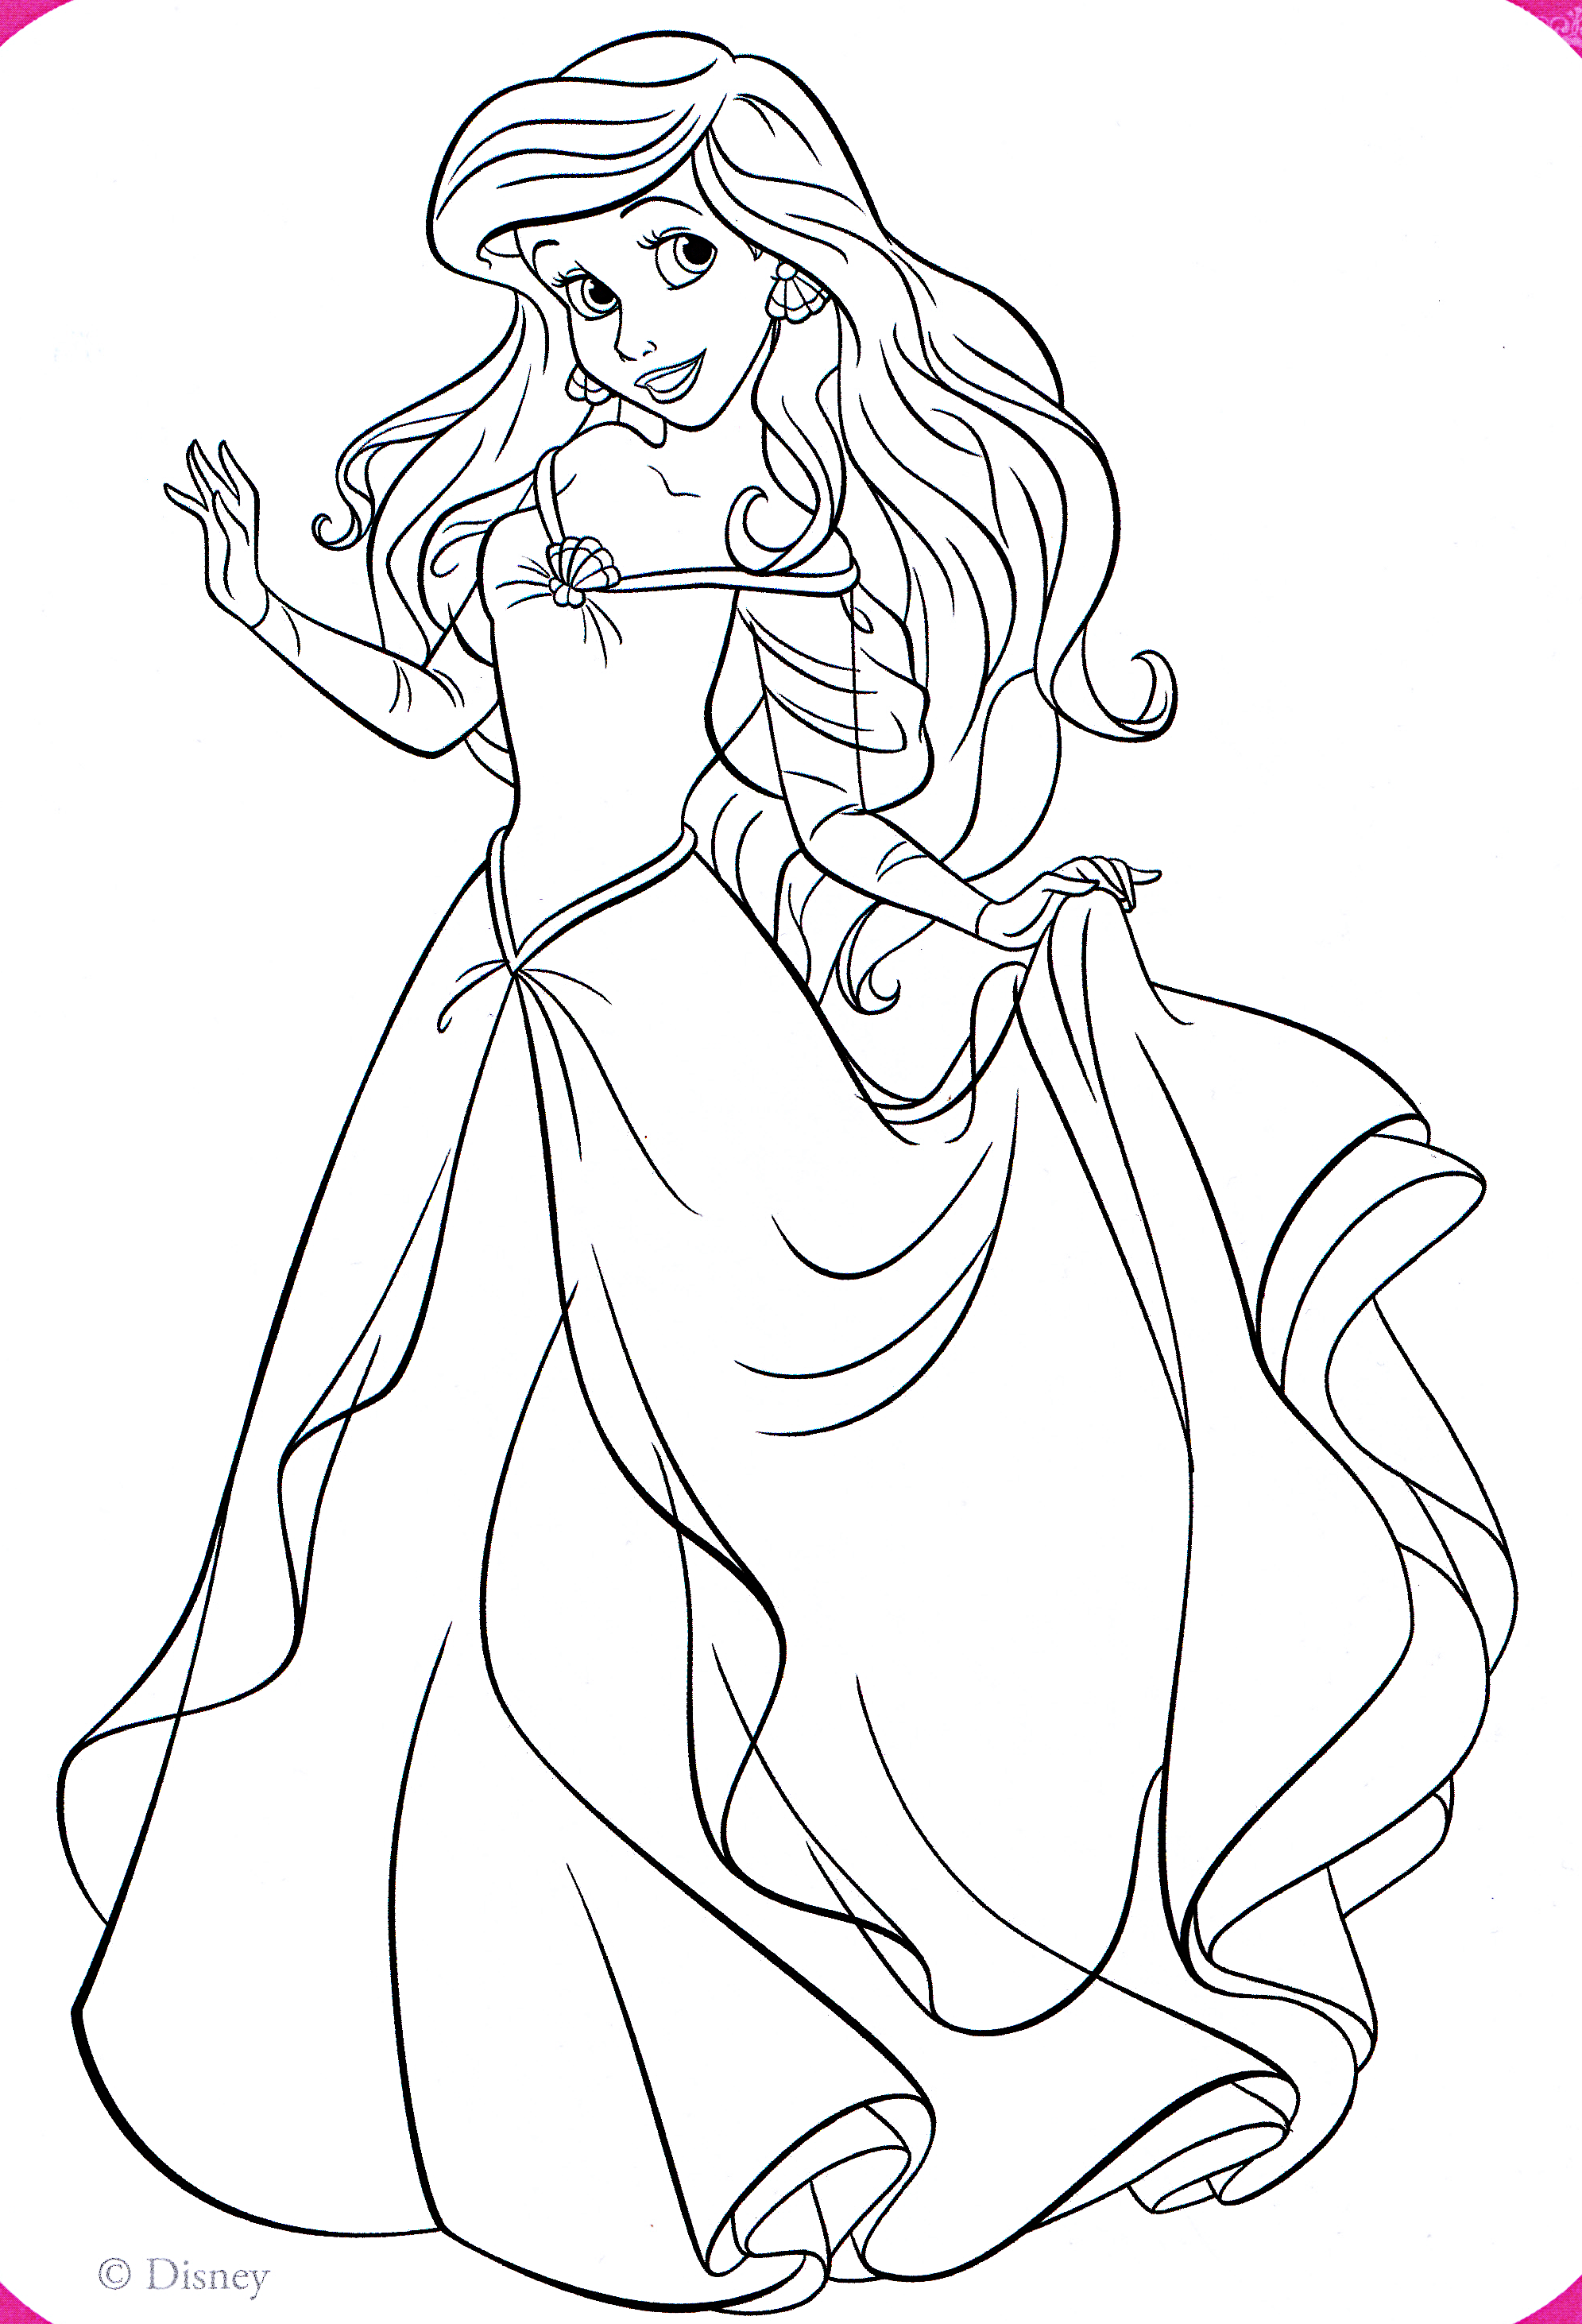 Walt Disney Coloring Pages Princess Ariel Walt Disney Ariel Princess Coloring Page Free Coloring Sheets